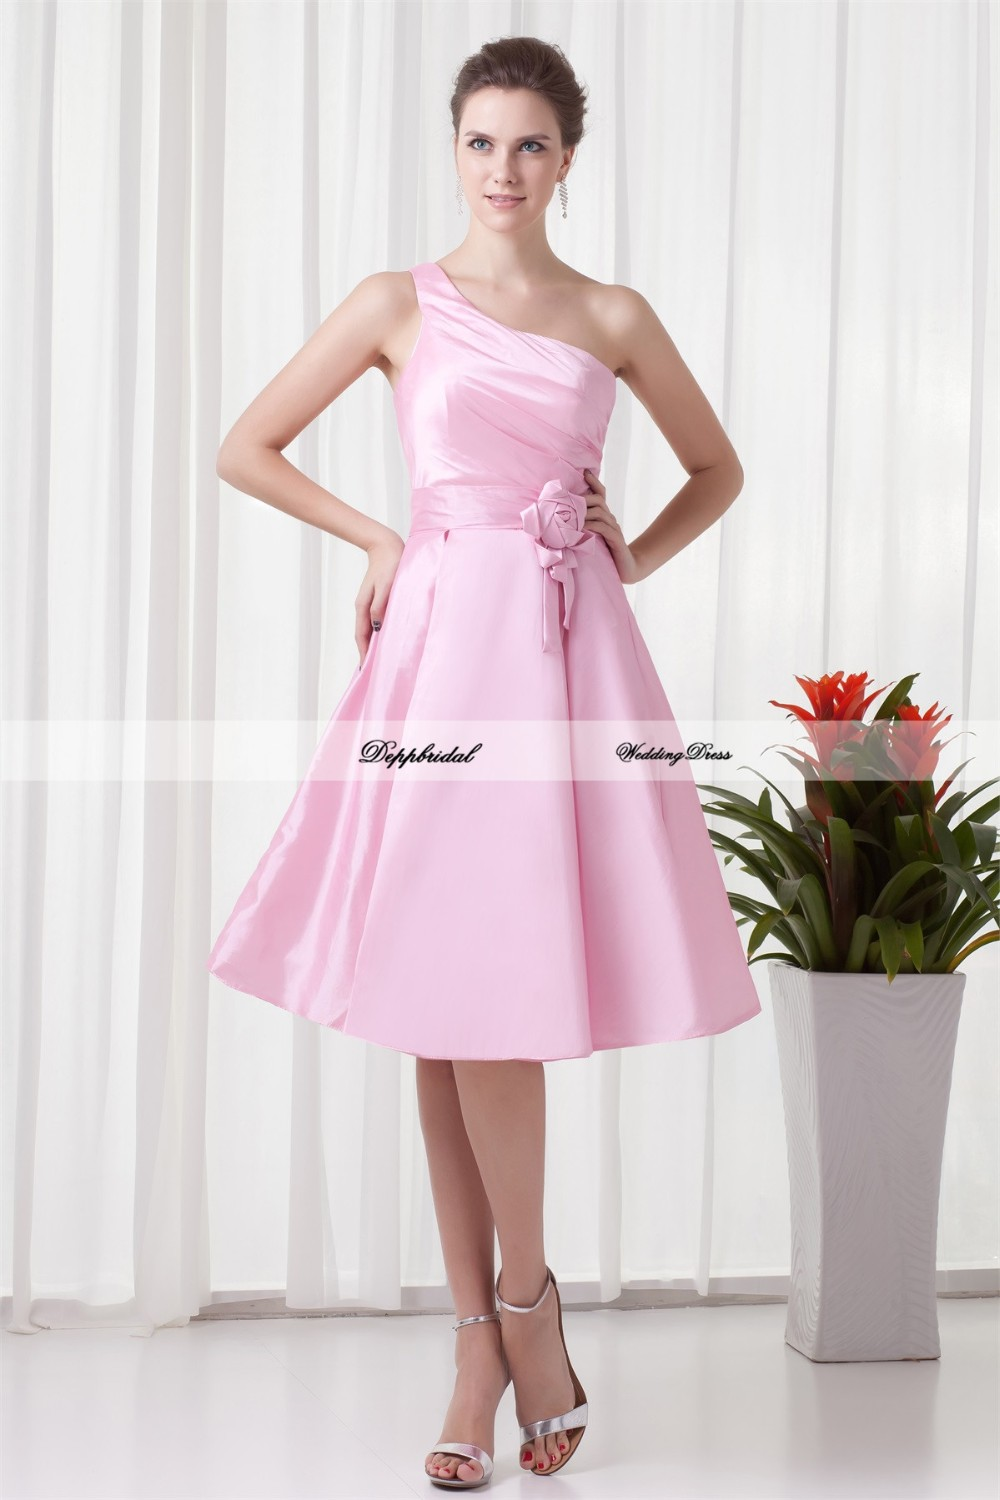 Handmade-Flower-s-A-Line-Tea-Length-One-Shoulder-Bridesmaid-Dresses-22708-80842